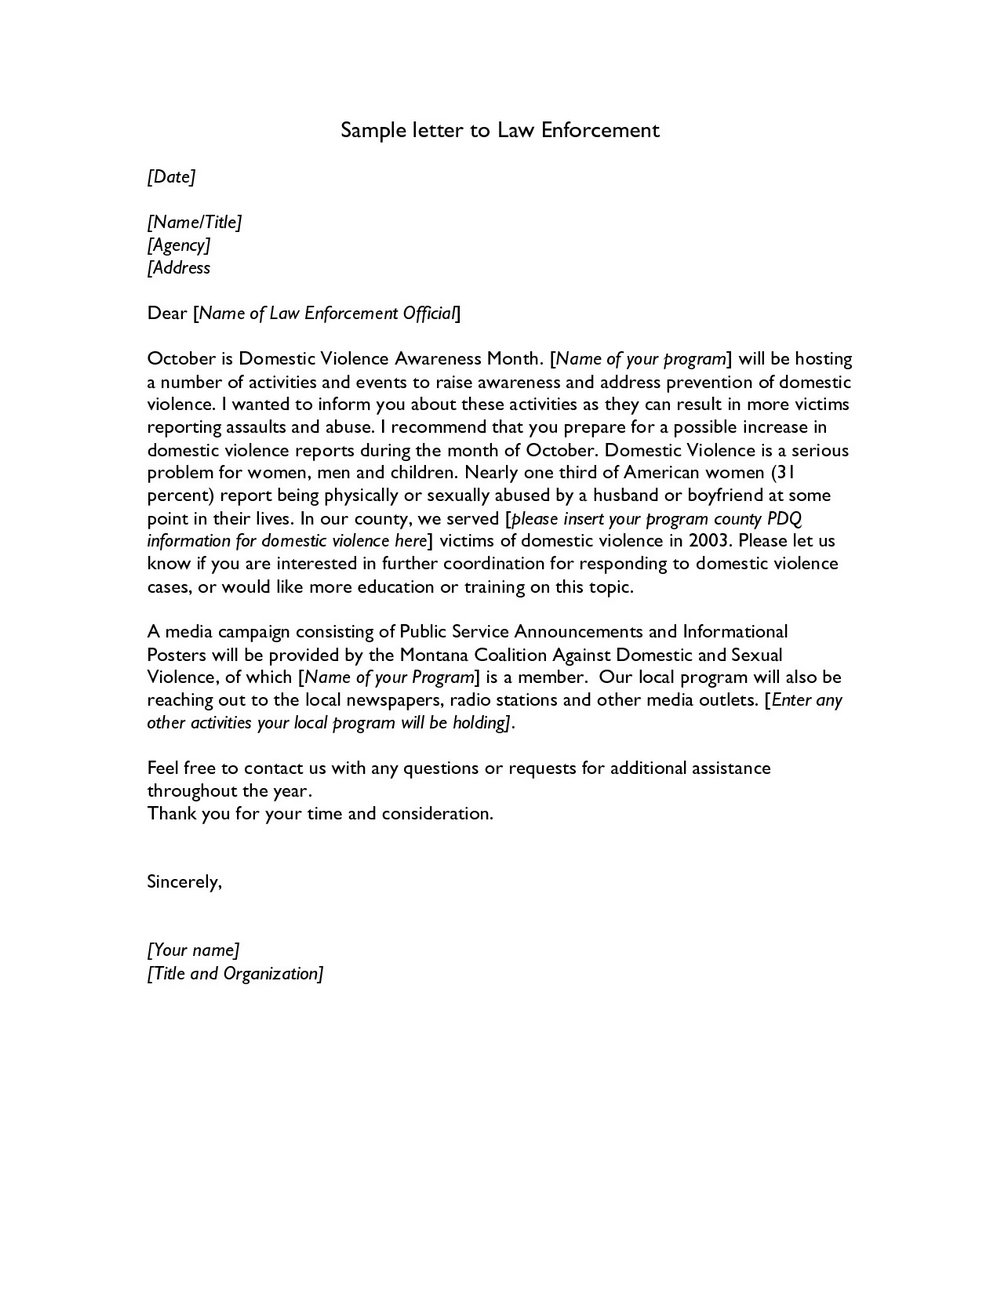 Free Cover Letter Templates For Law Enforcement